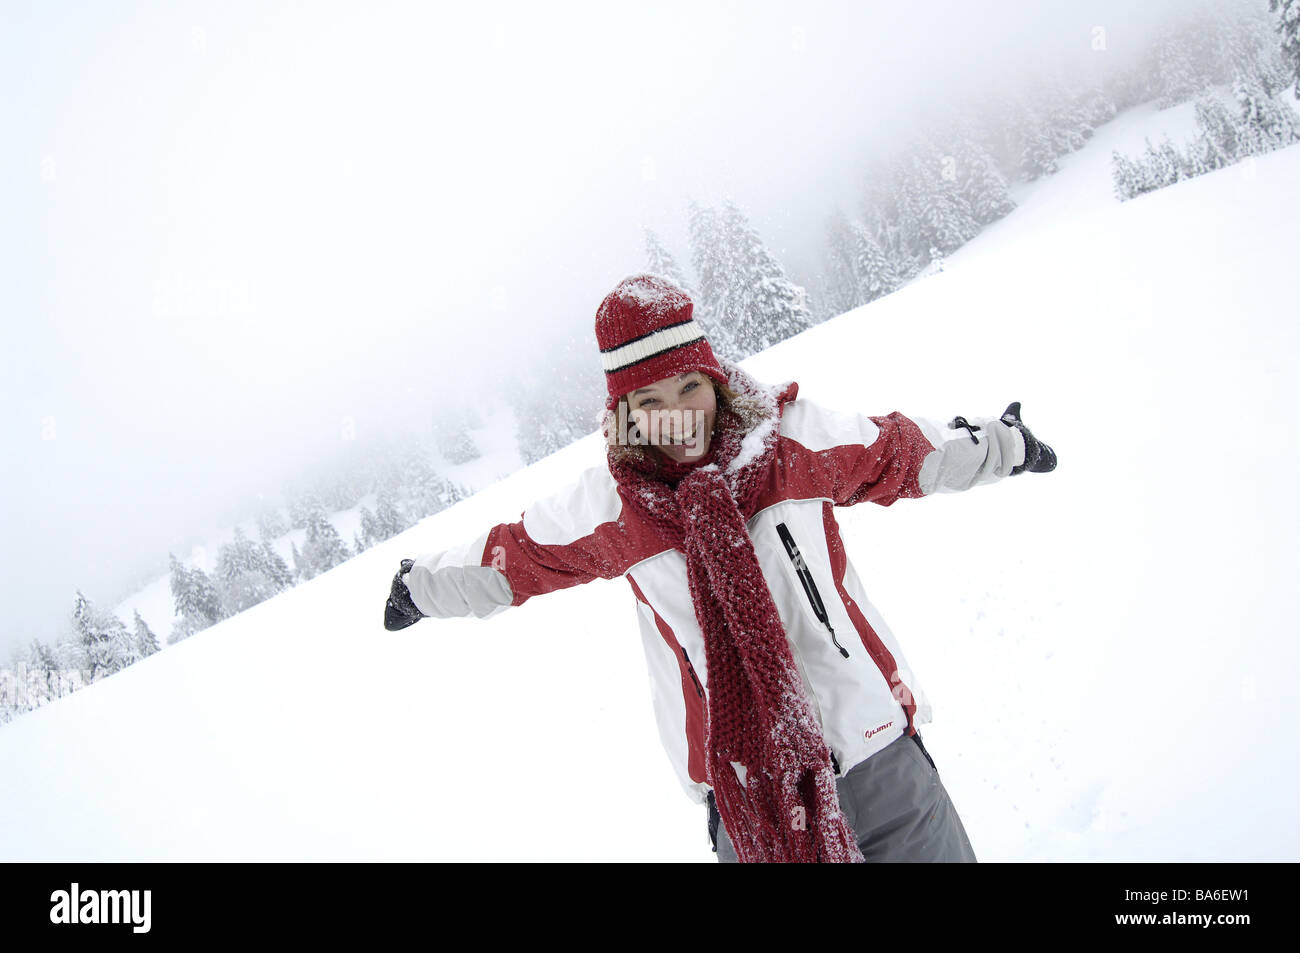 Winter-landscape woman young cap winter-clothing cheerfully laughs gesture joy snow semi-portrait landscape vacation - Stock Image